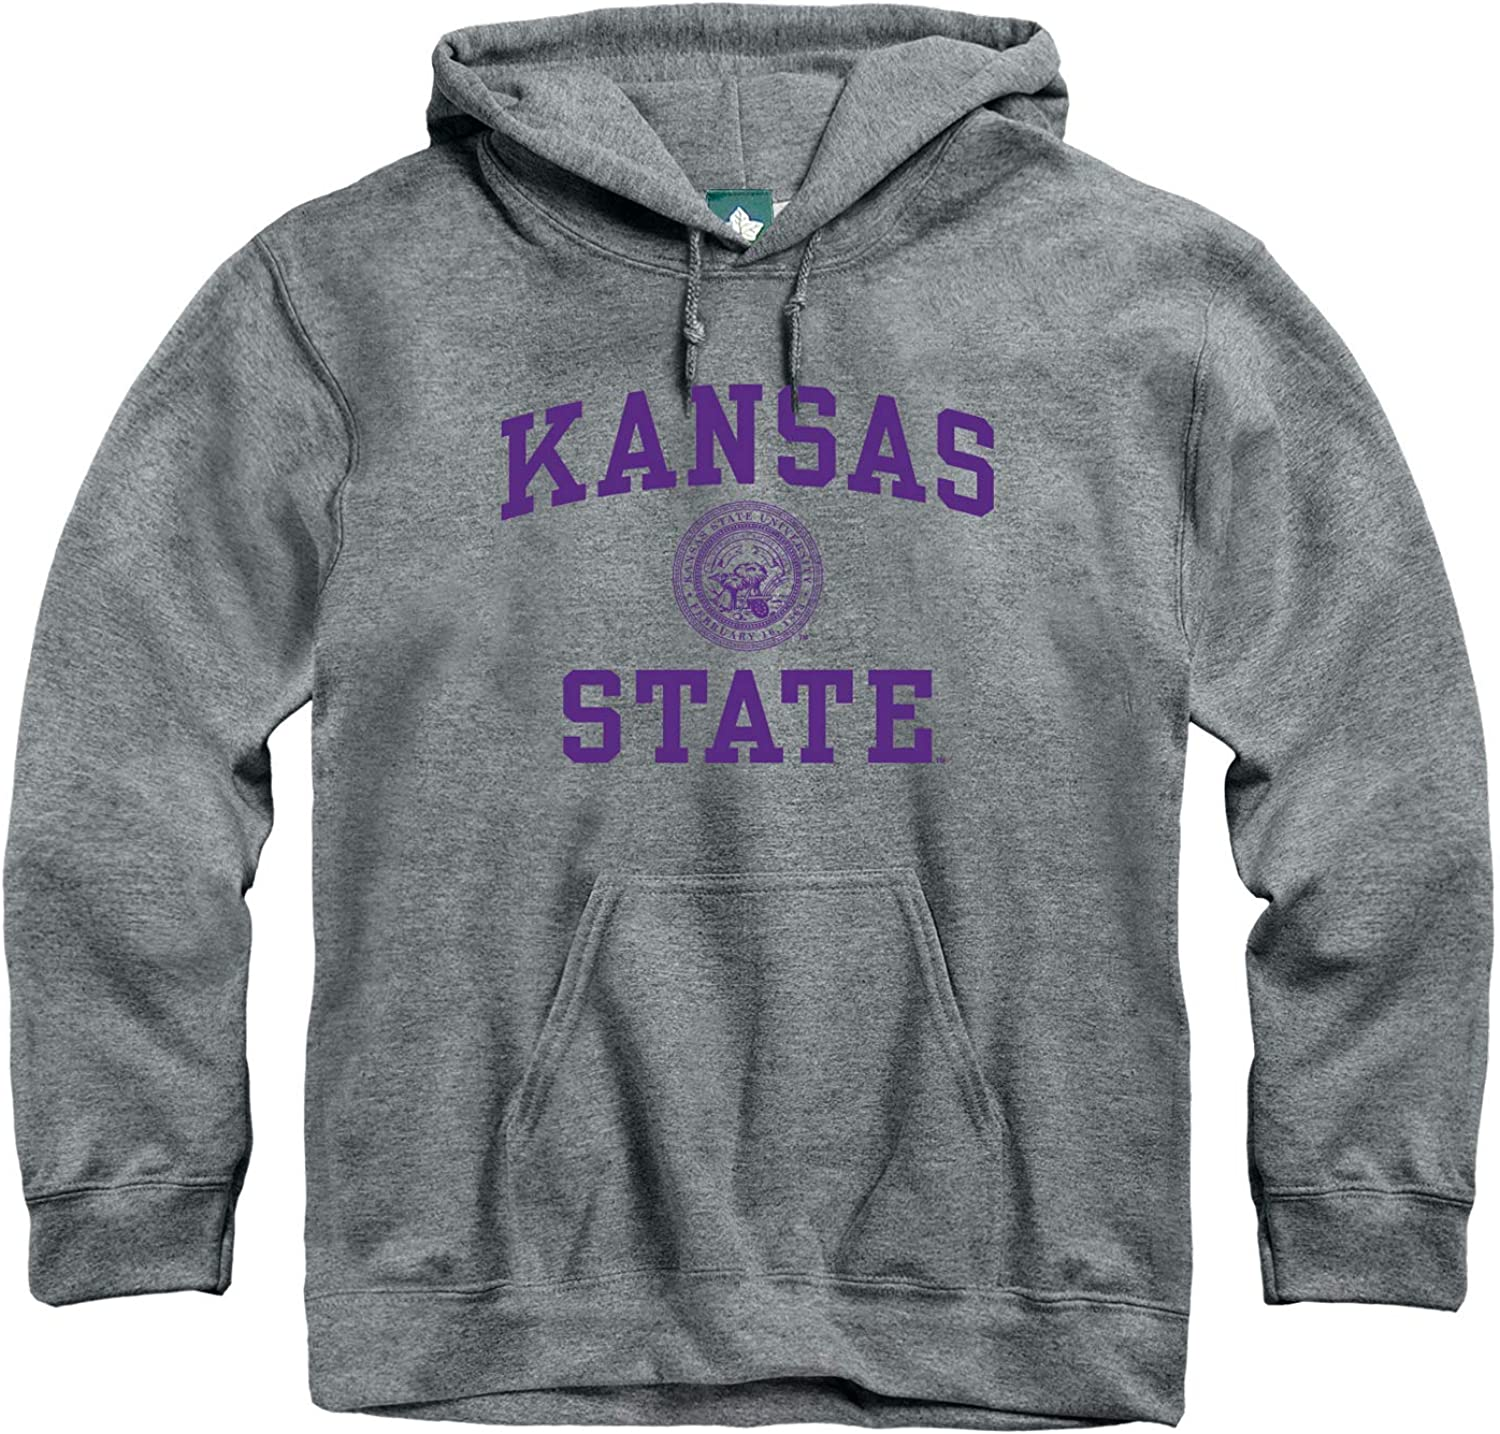 Heritage Logo Grey NCAA Colleges and Universities Cotton//Poly Blend Ivysport Hooded Sweatshirt